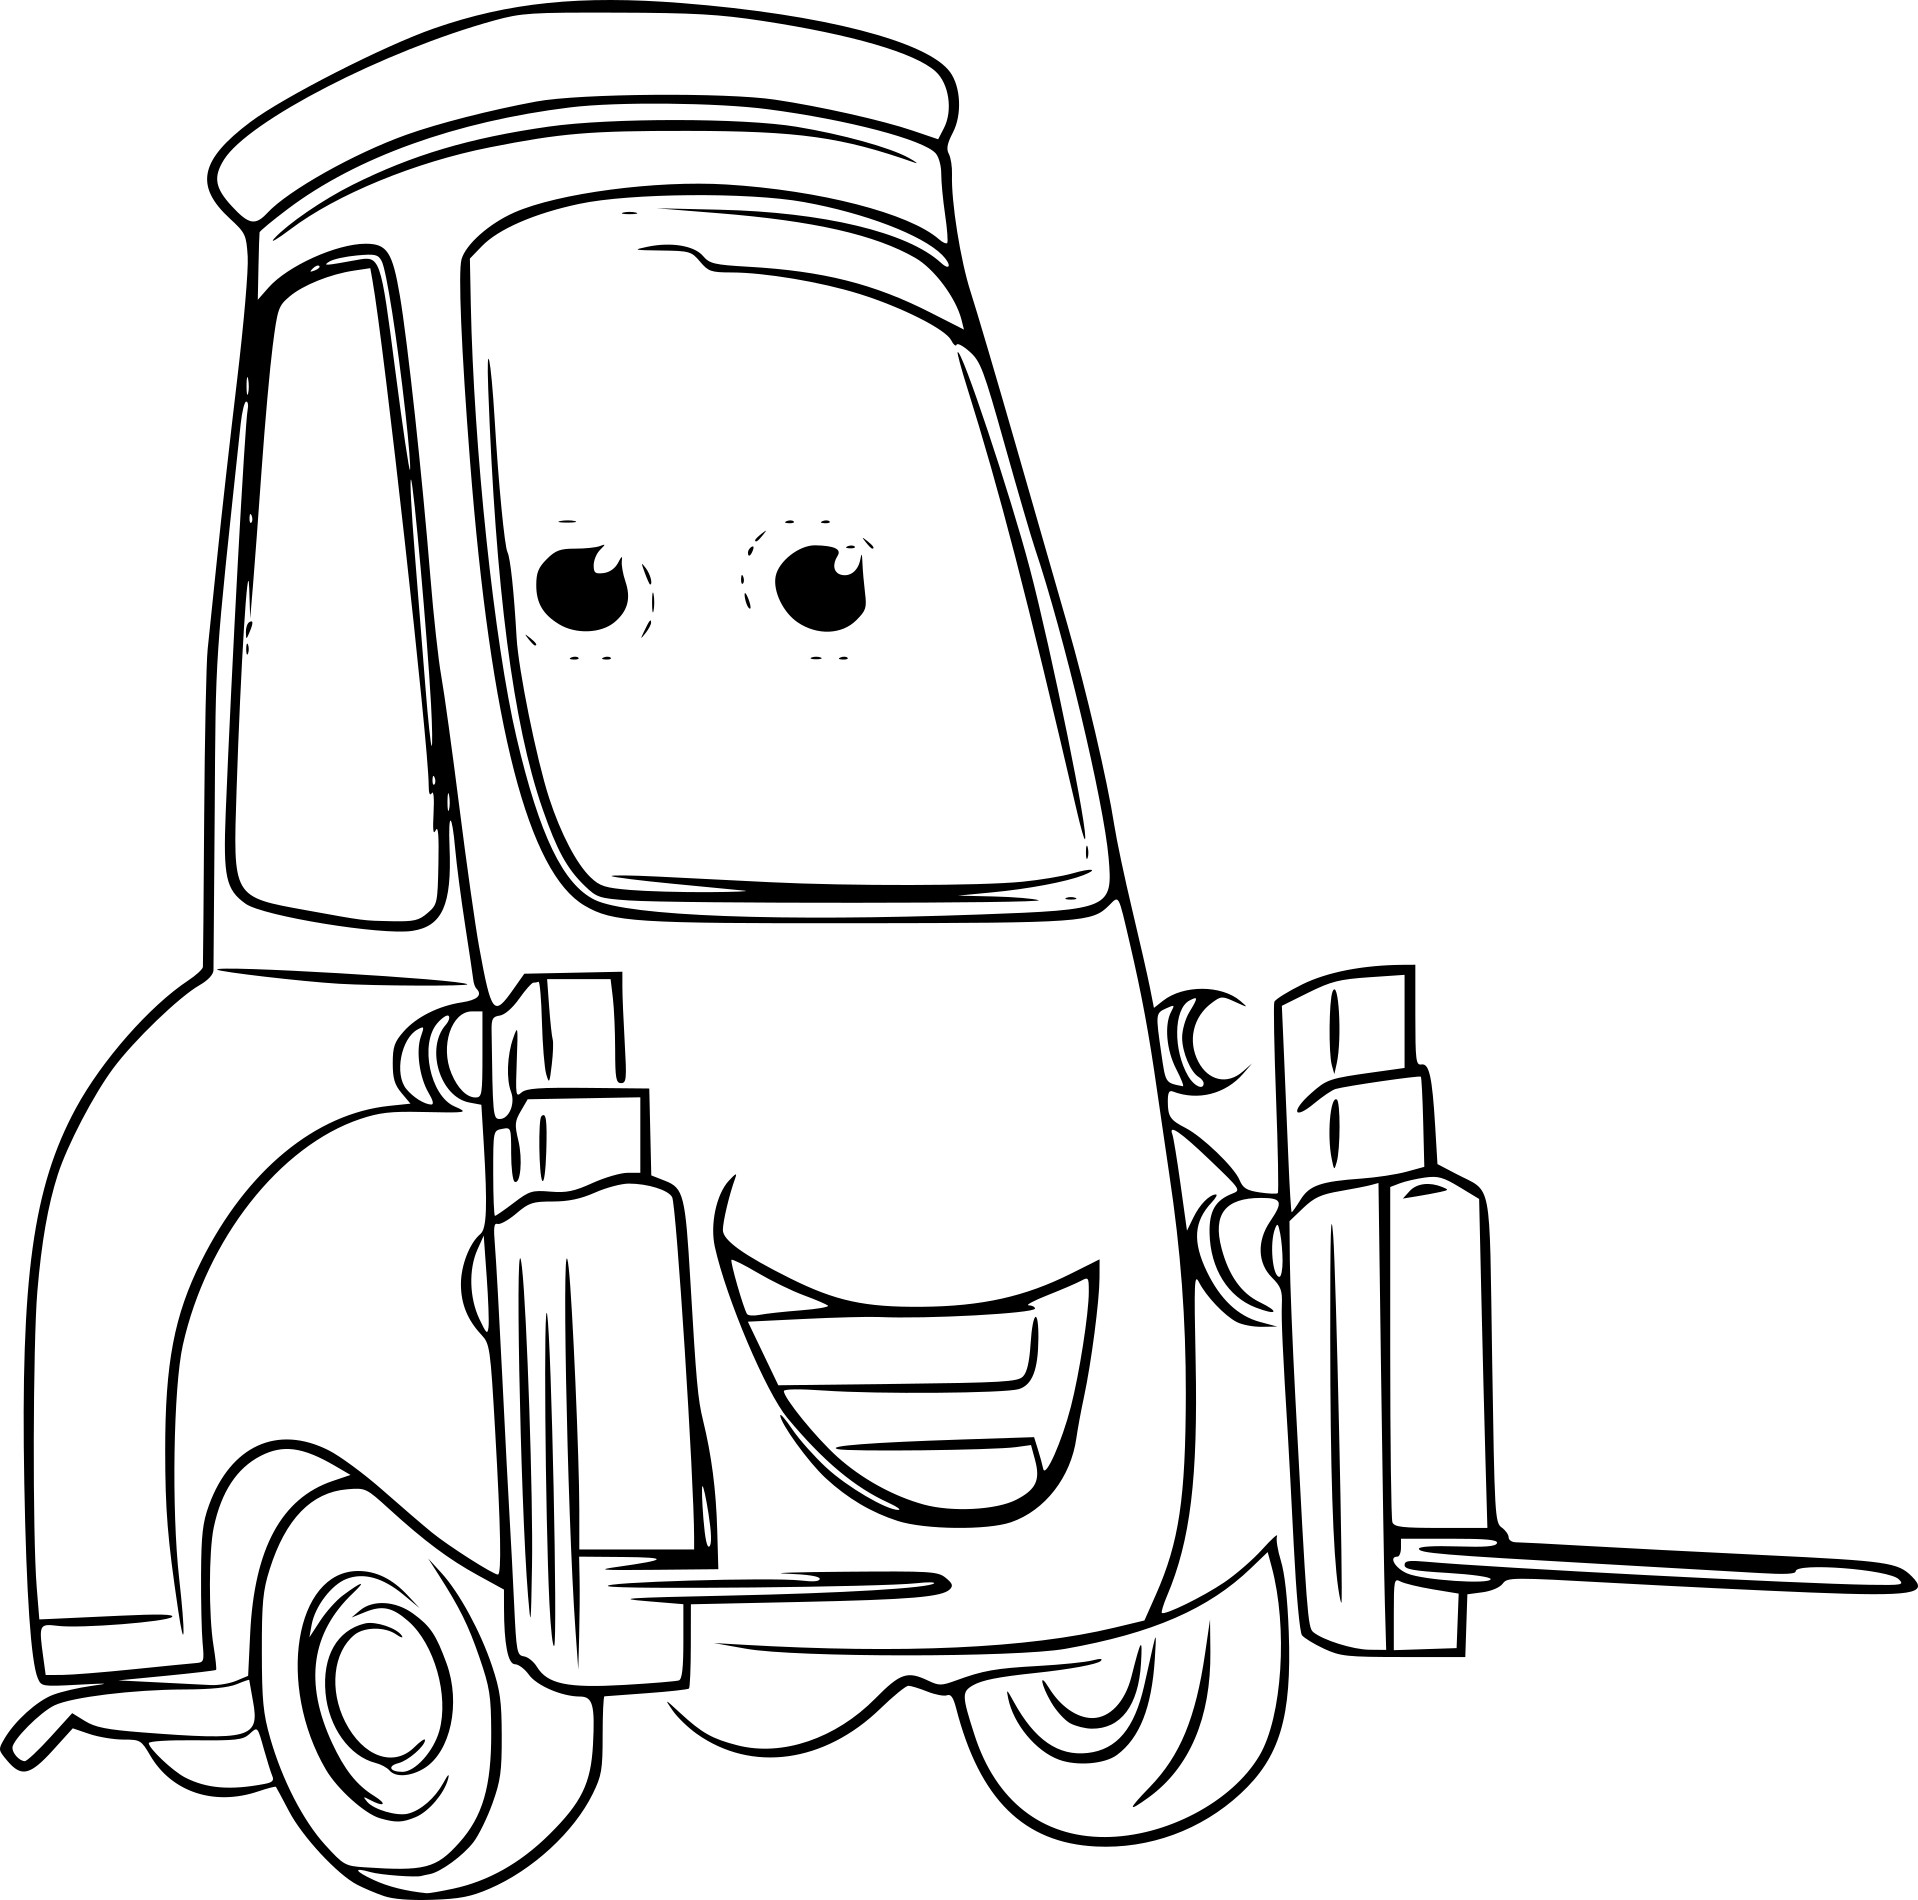 Coloriage guido cars 3 imprimer - Coloriage cars 3 ...